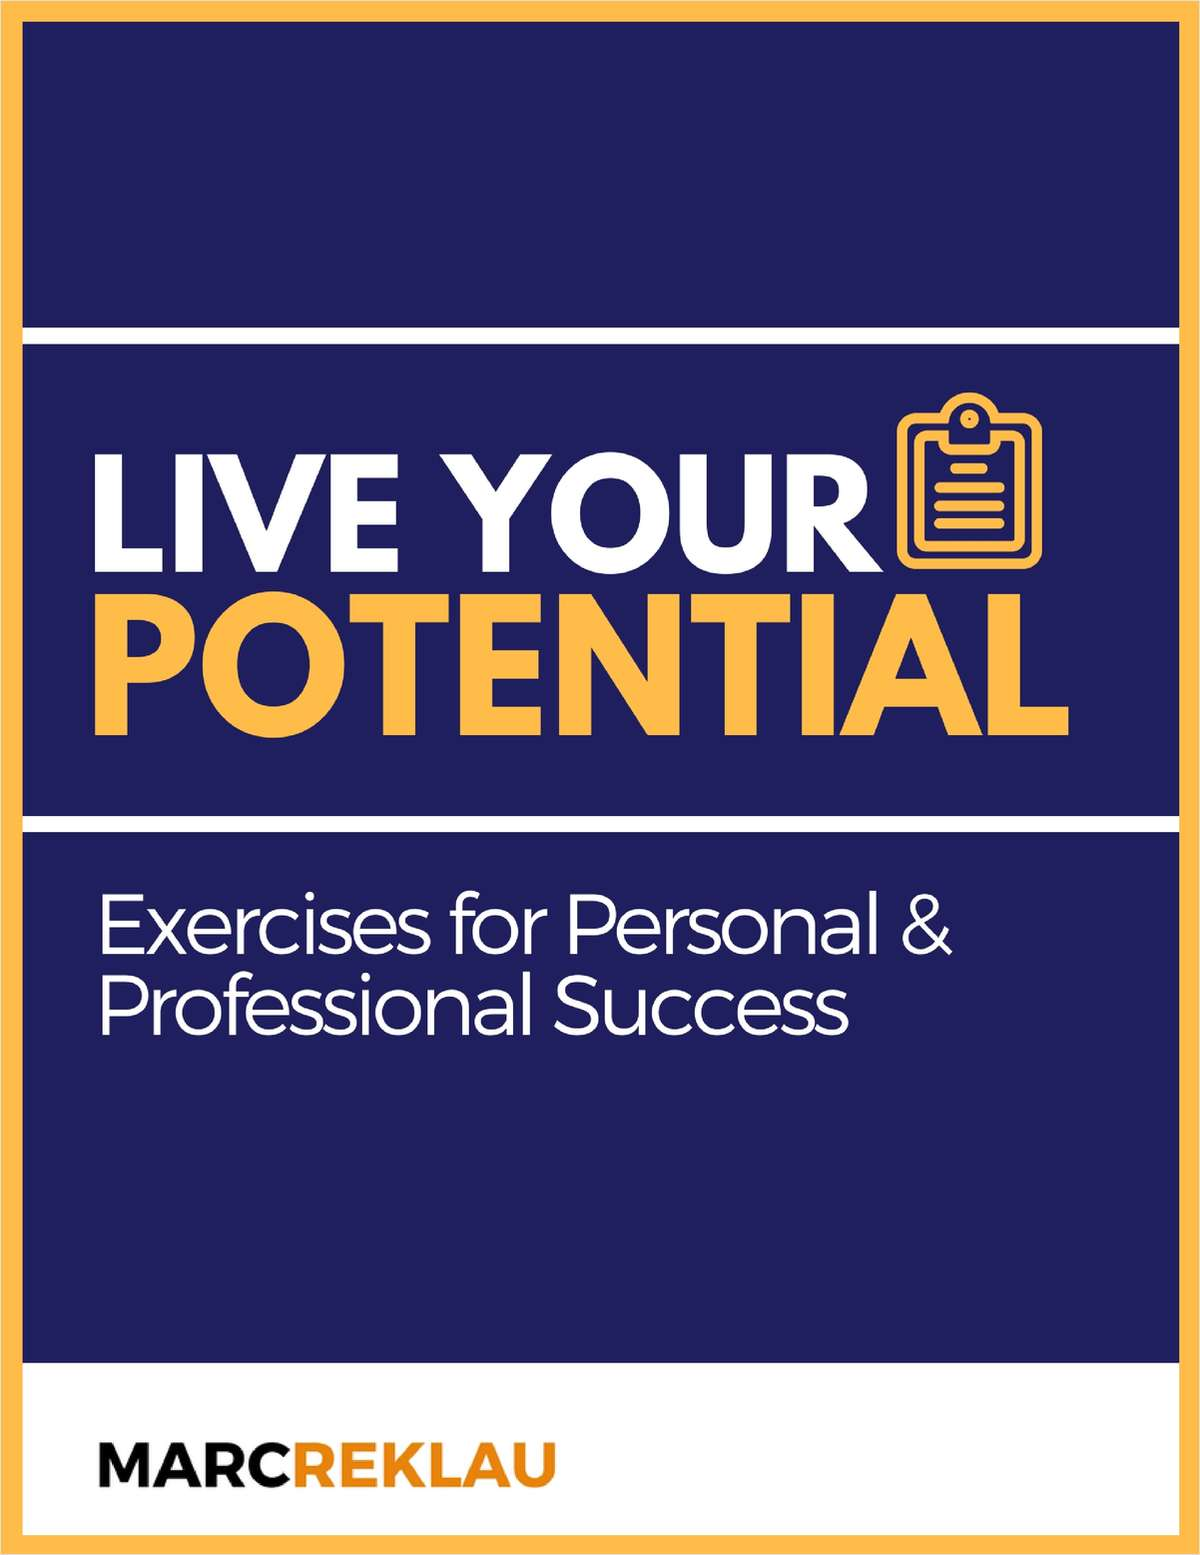 Live Your Potential - Exercises for Personal & Professional Success